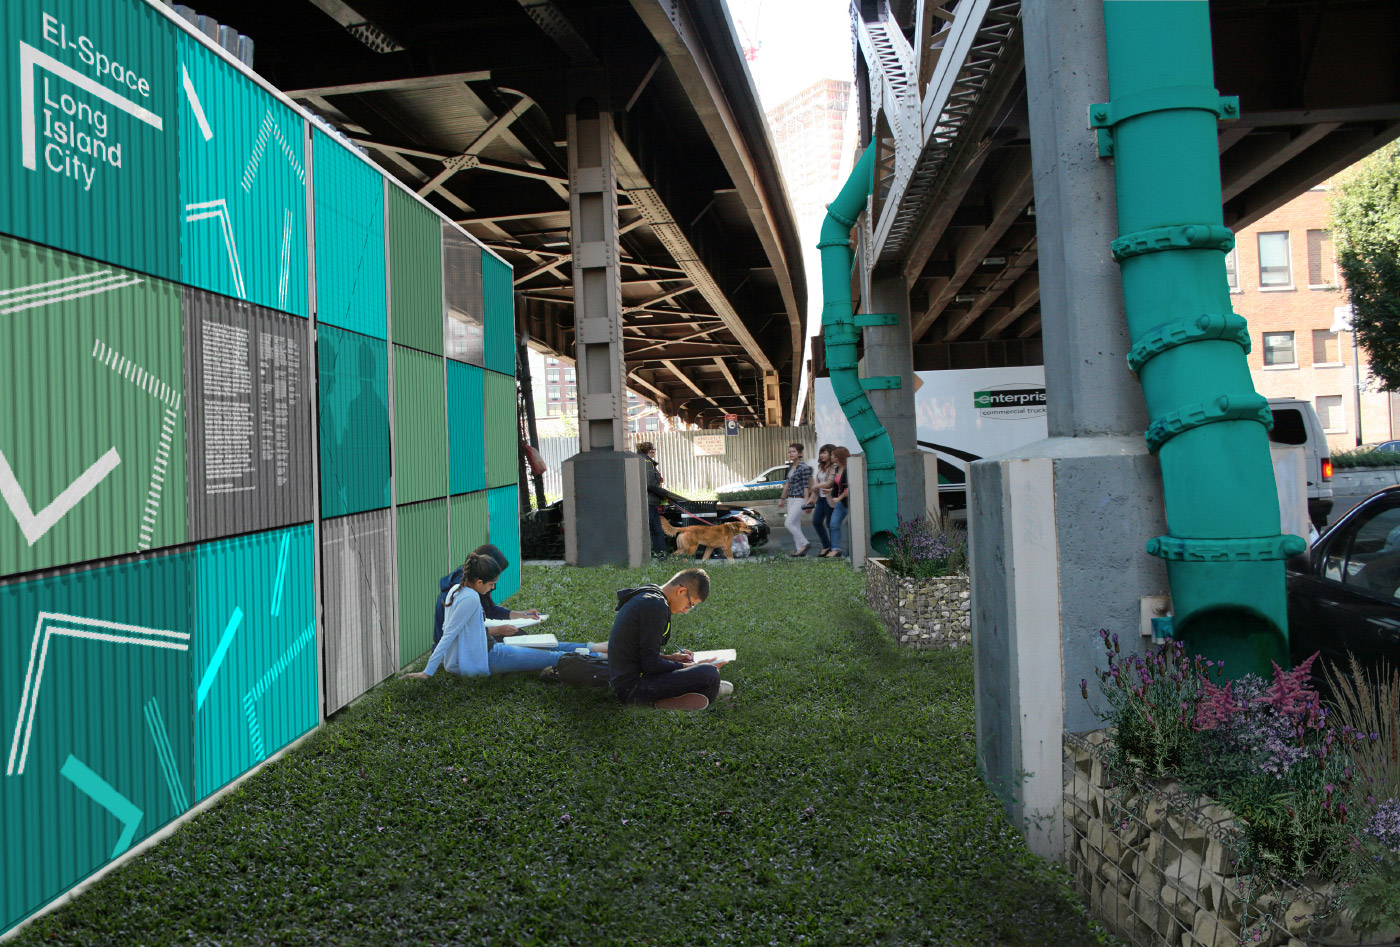 Rendering of a grass patch under elevated roadways